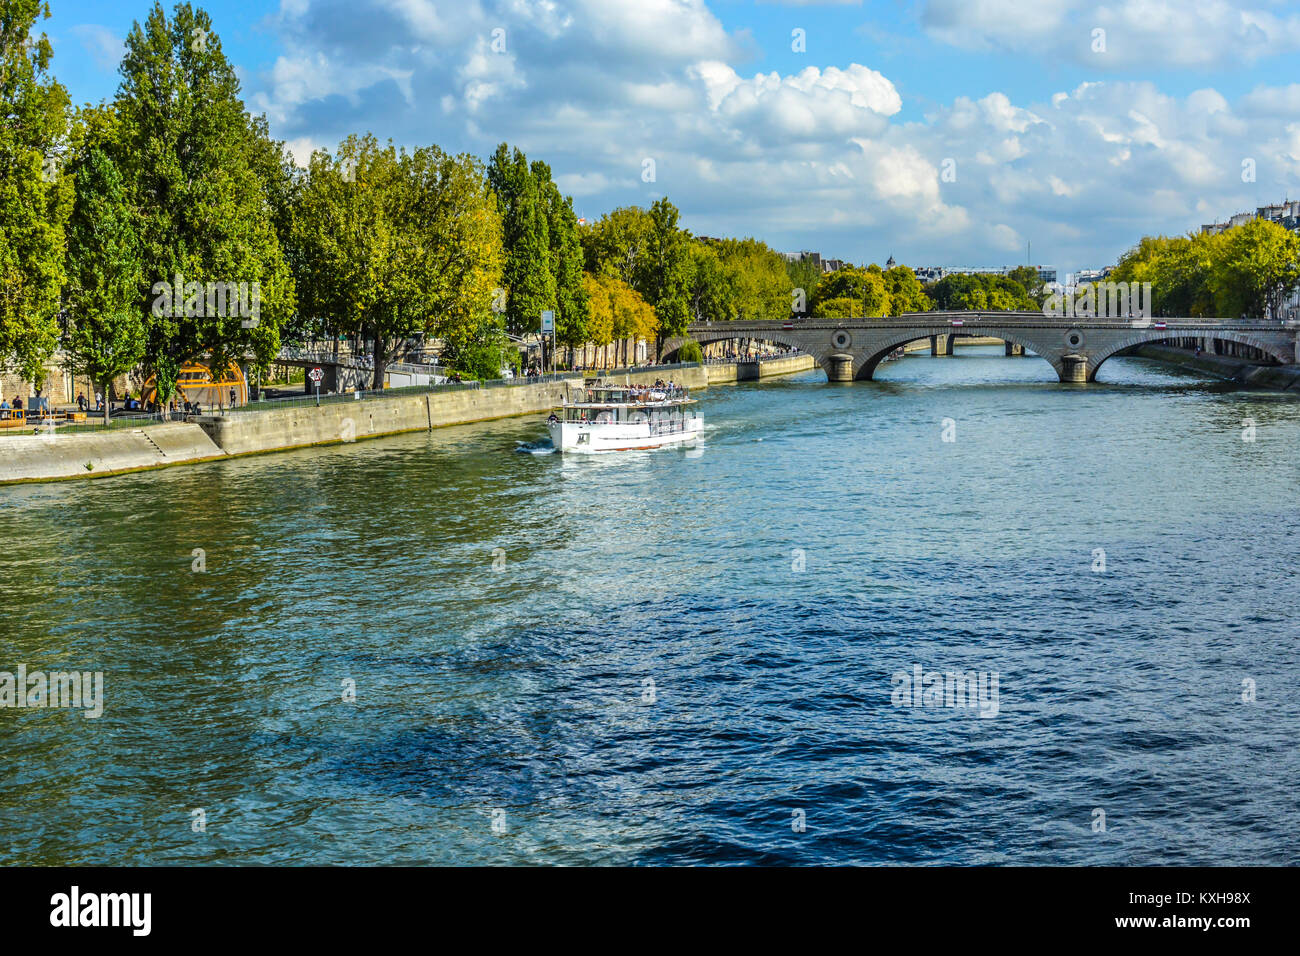 A tour boat cruises along the Seine River near the center of Paris France on a sunny day in early autumn - Stock Image